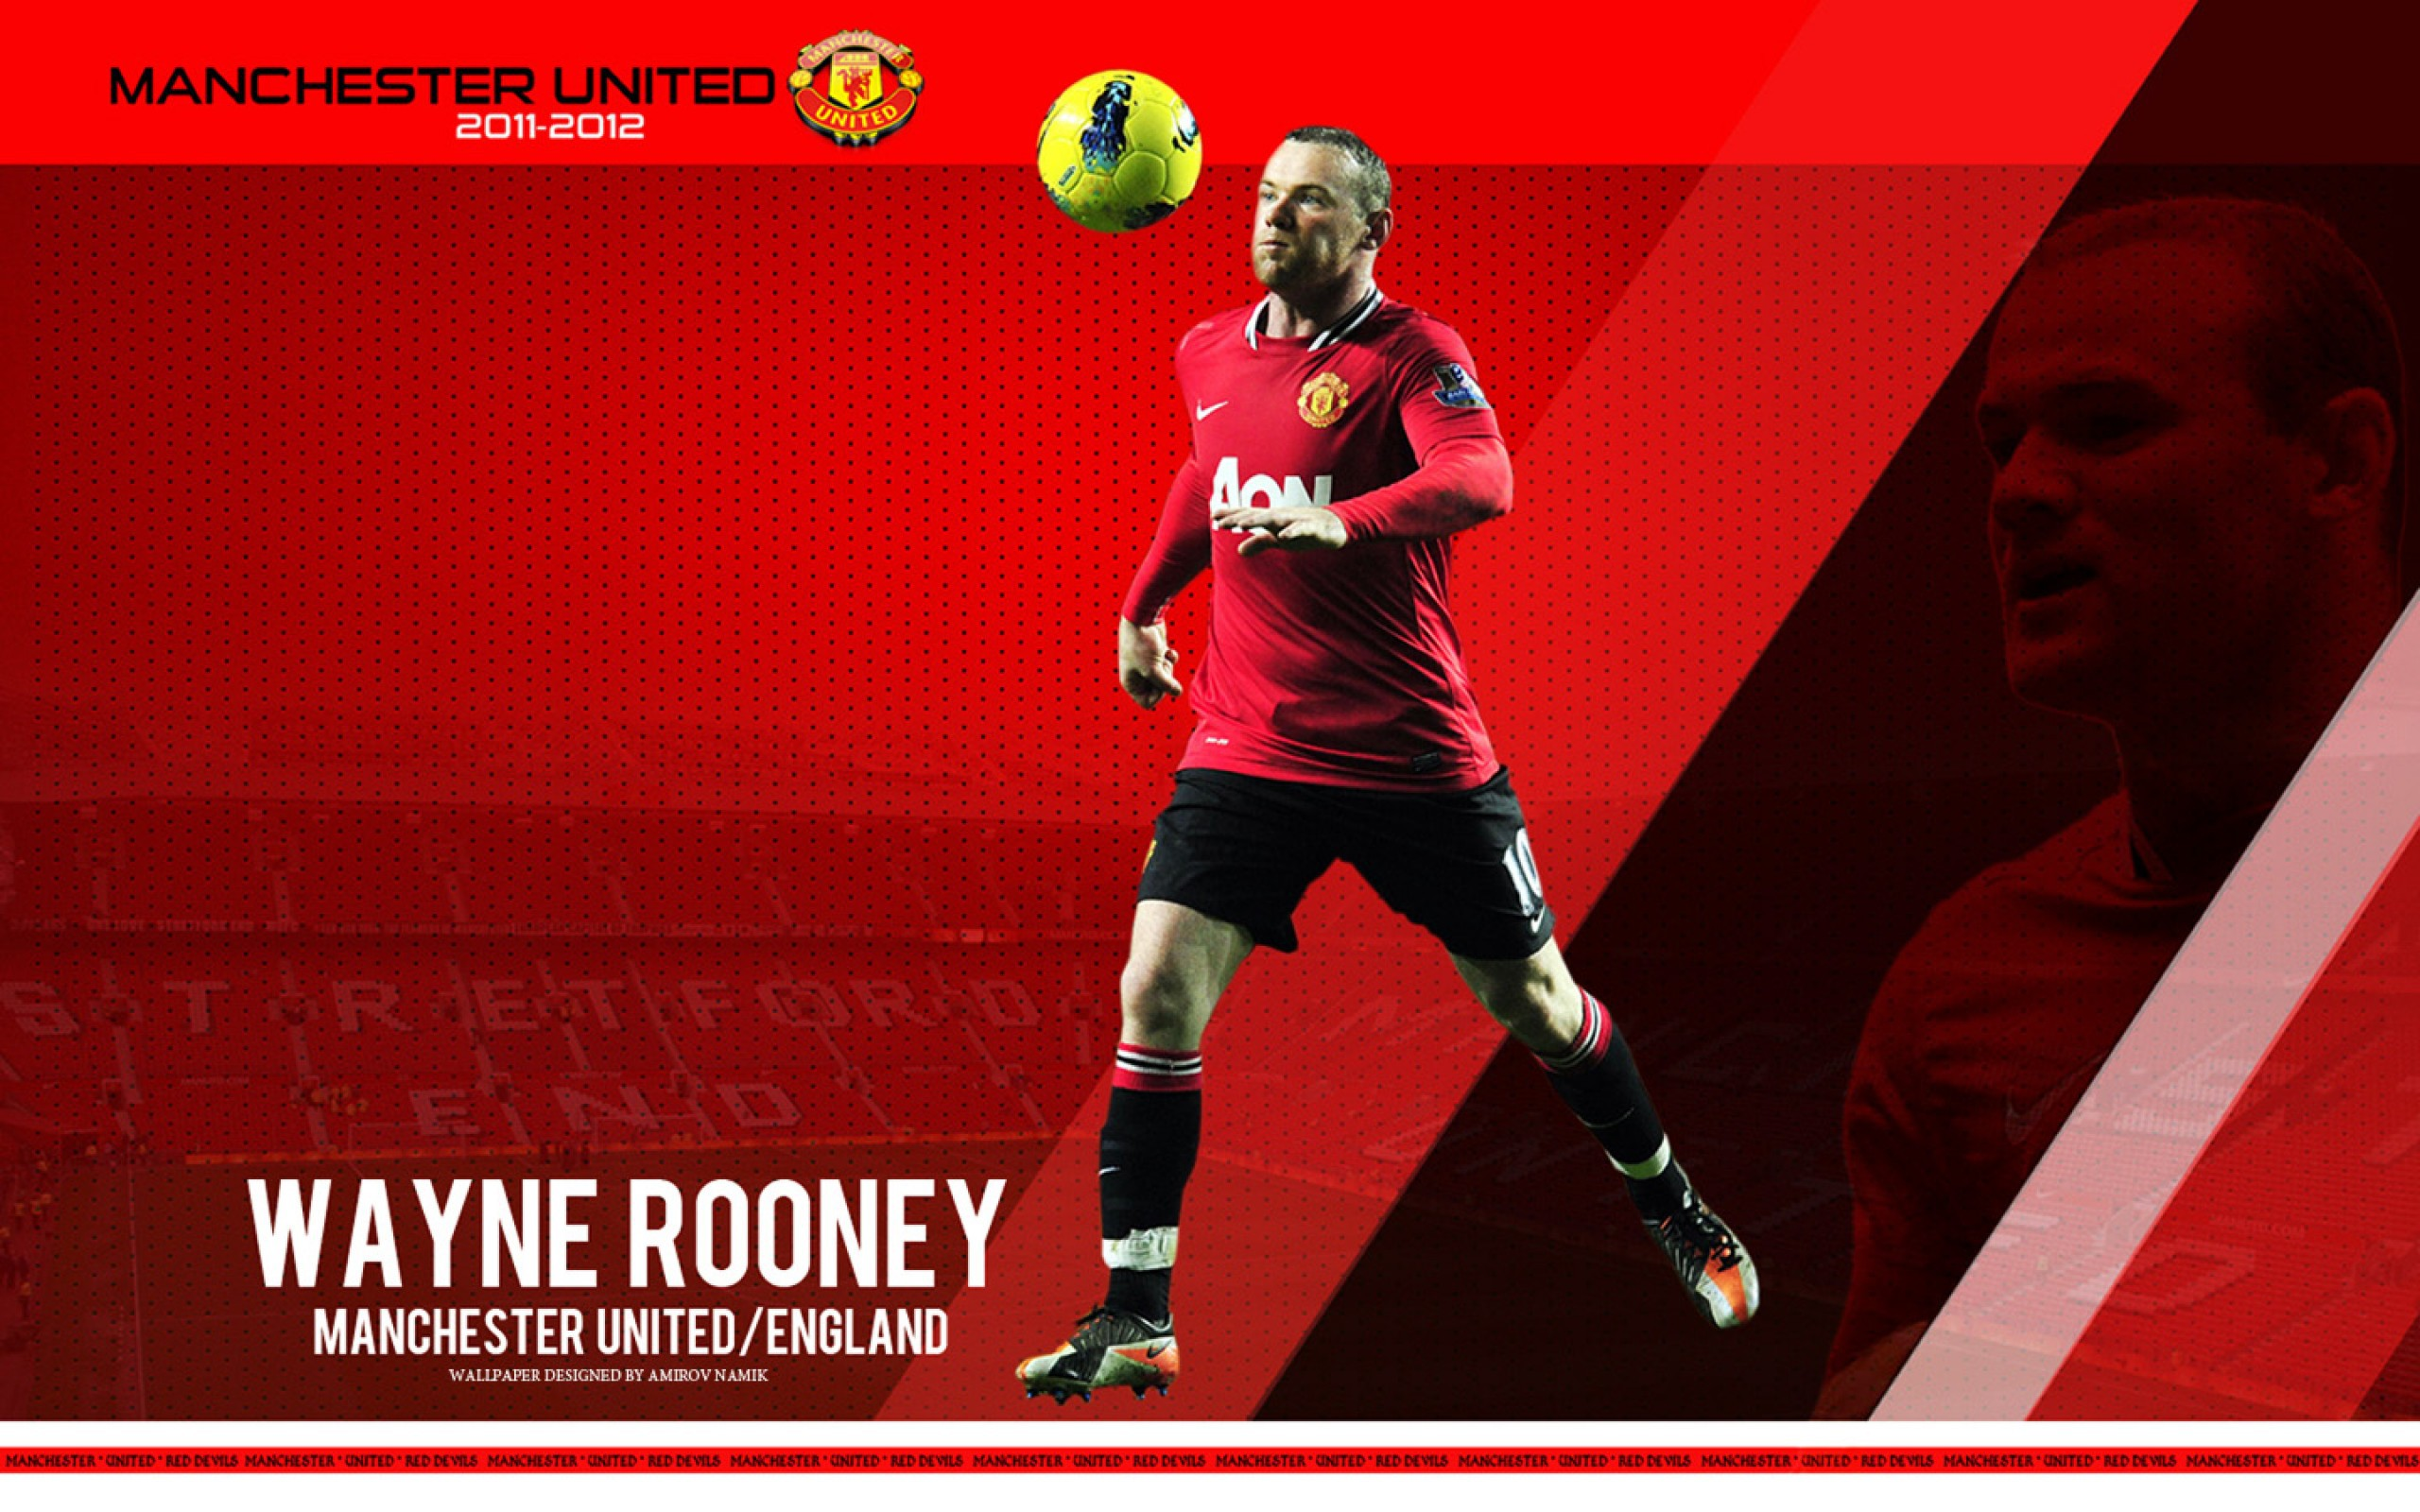 The player of Manchester United Wayne Rooney on the red background